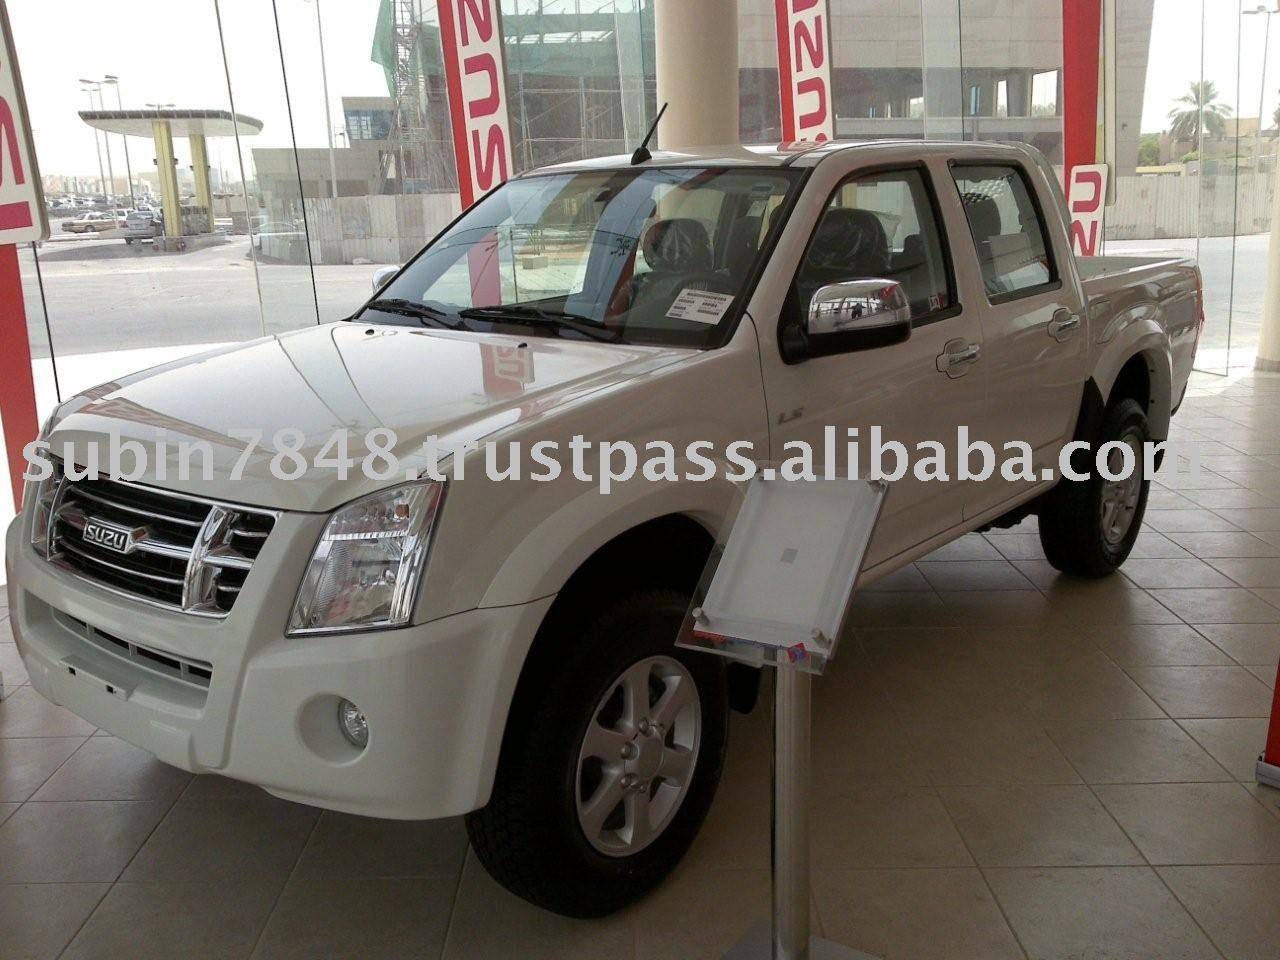 ISUZU D-MAX 2.5L DIESEL MANUAL 4X4 MANUAL NEW PICKUP 2011,View ...